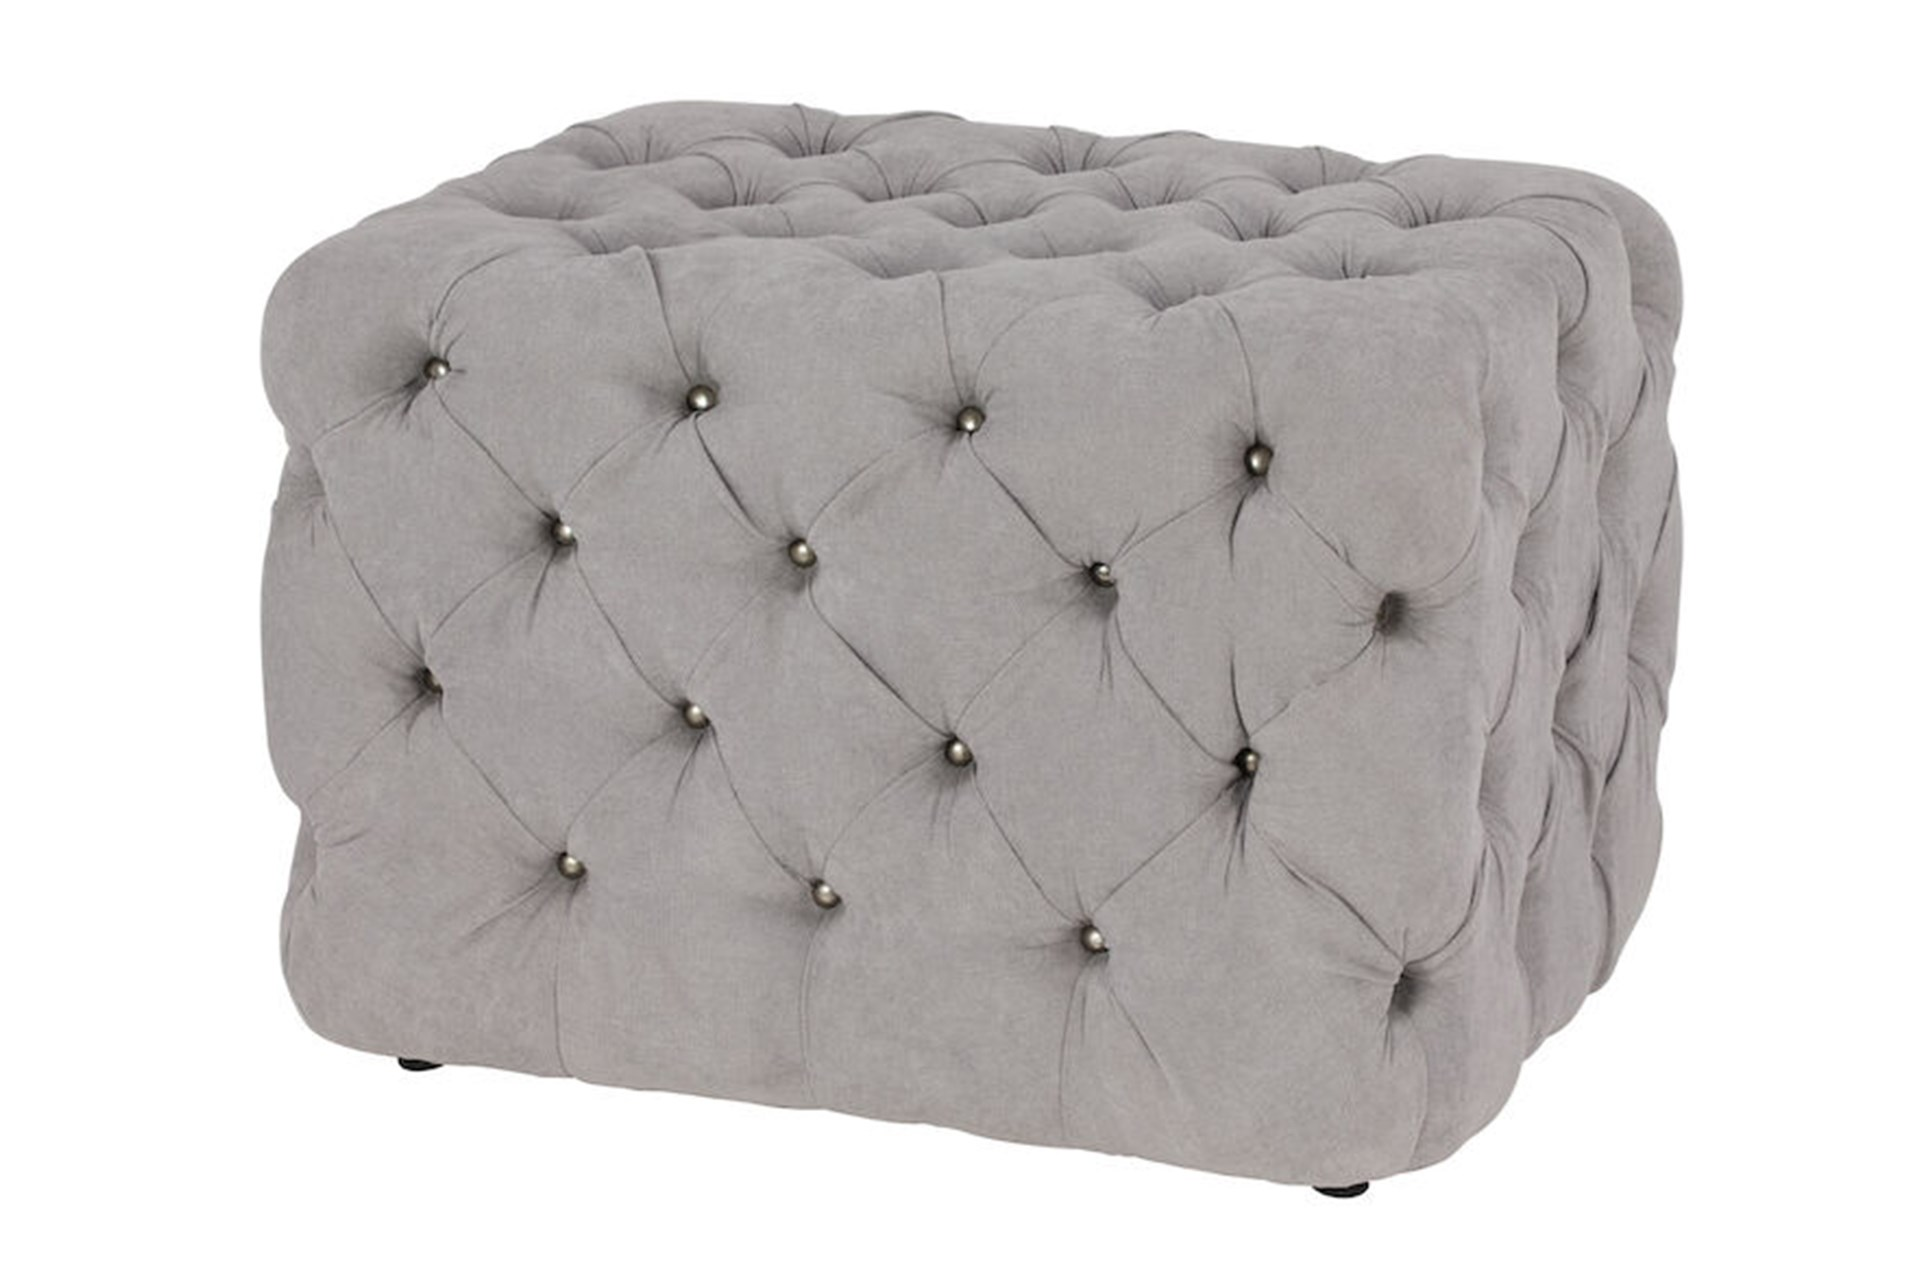 Admirable All Over Tufted Grey Square Ottoman Forskolin Free Trial Chair Design Images Forskolin Free Trialorg